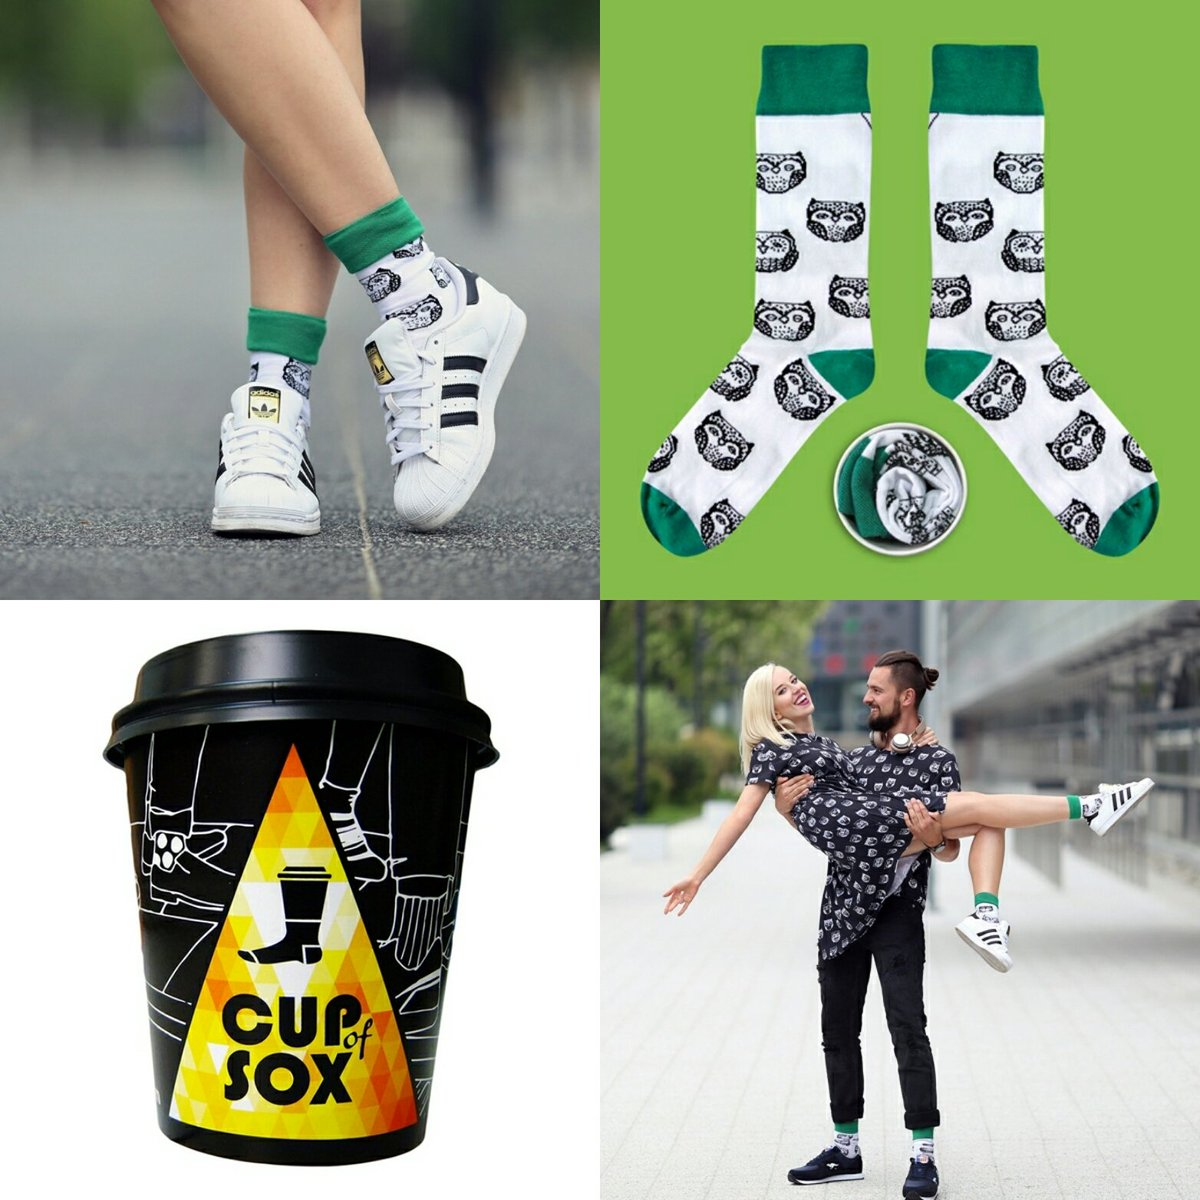 The Owls by Cup of Sox @adidasZA  #luxury #sneakers #socks #cupofsox @GLAMOUR_sa @spreecoza @superbalist<br>http://pic.twitter.com/w5zgqzHYKZ